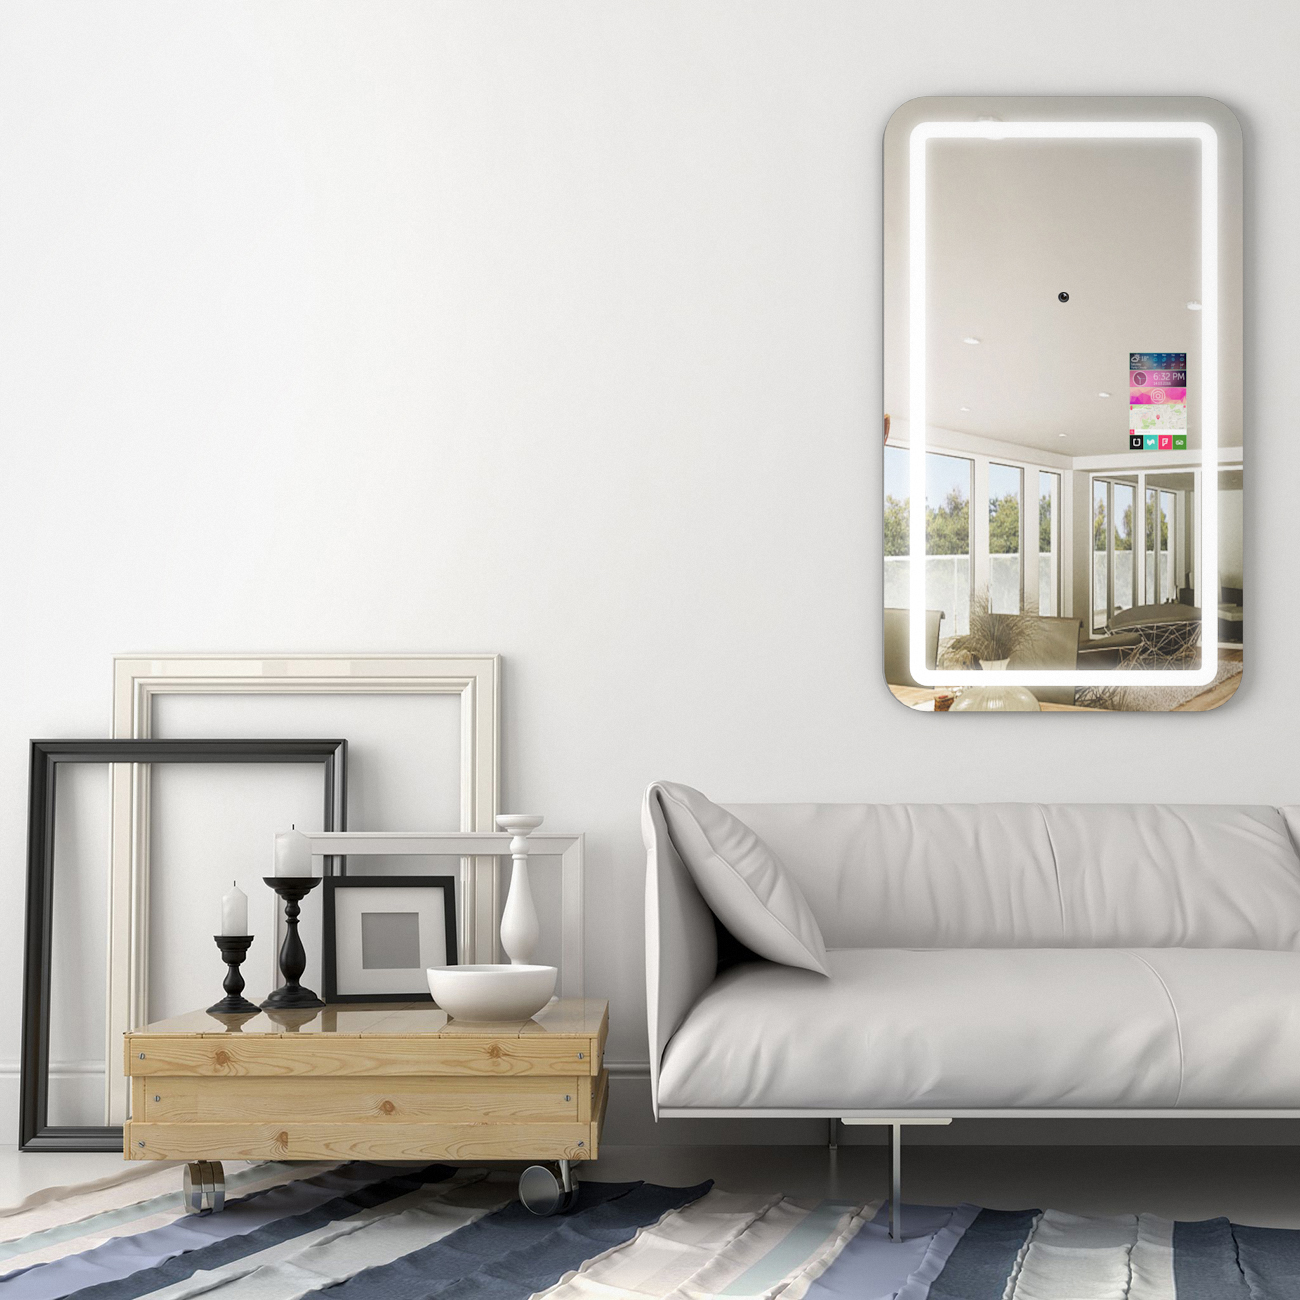 This Mirror Takes a Selfie FOR YOU! Stylists - Your Clients Will Love This!